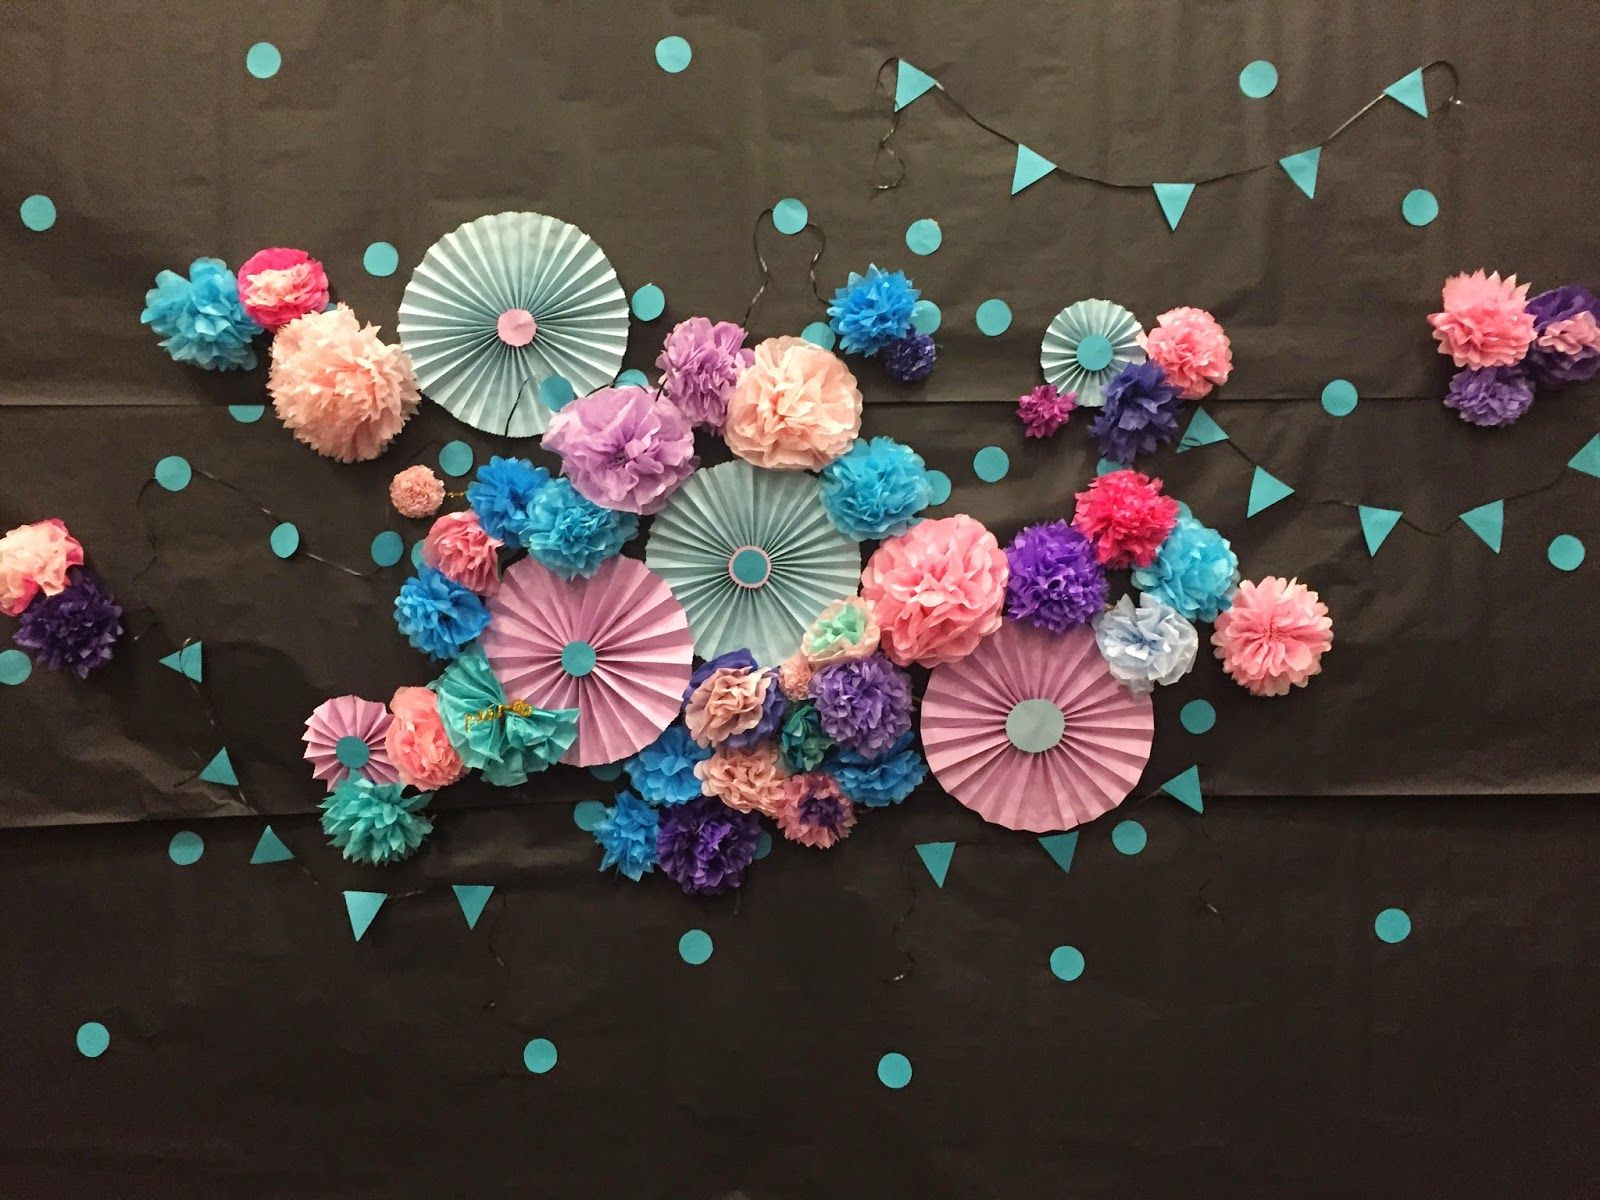 DIY Photo booth backdrop for LDS dance with paper pinwheels